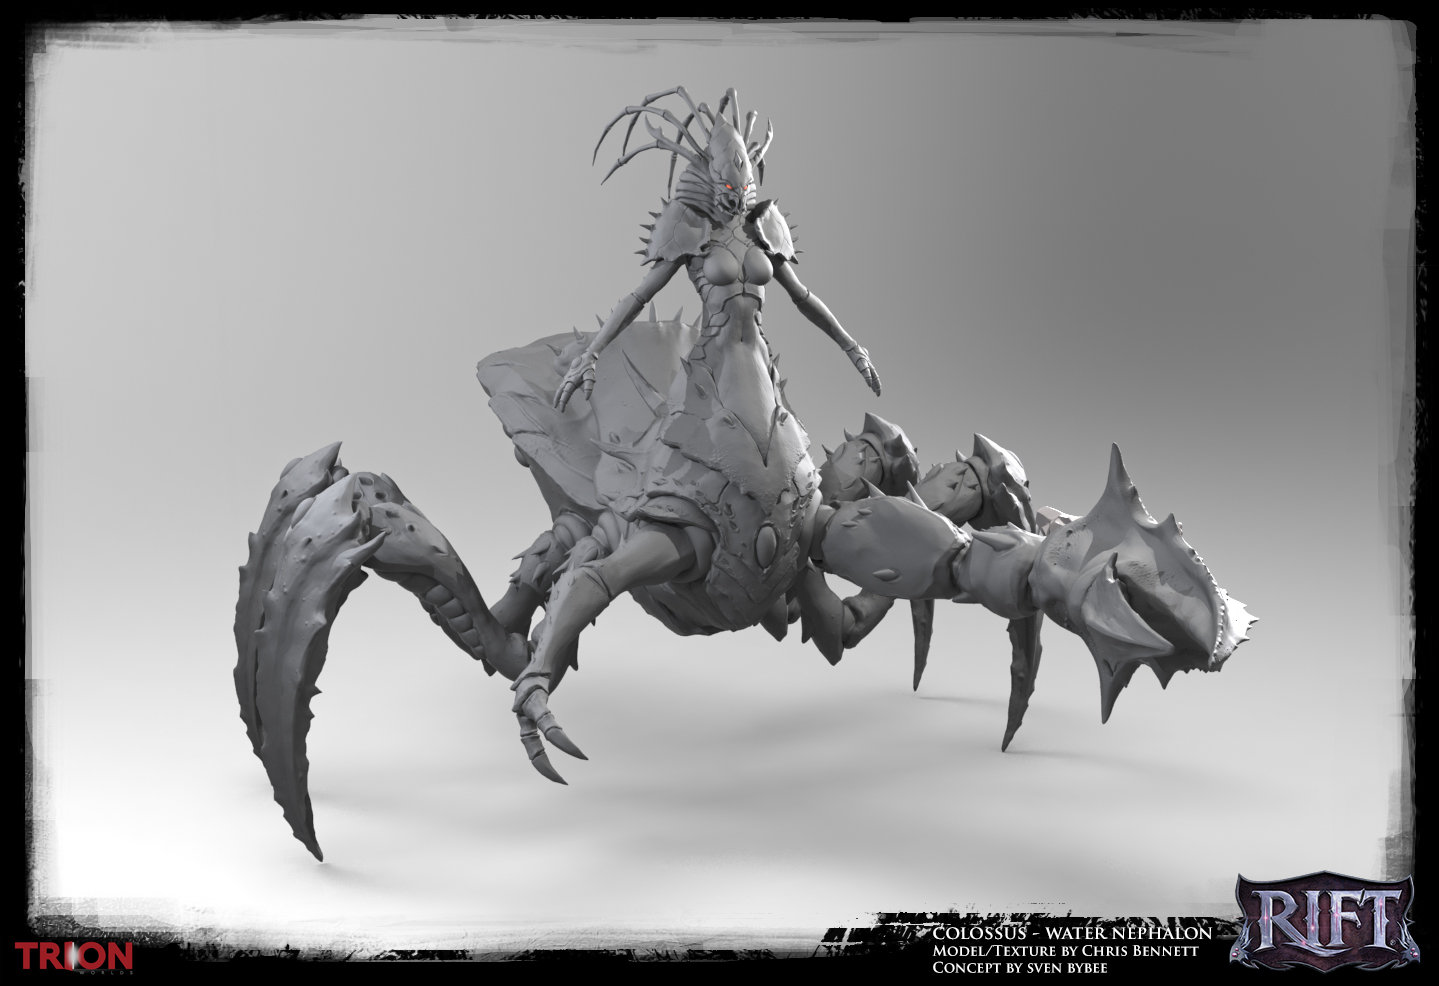 Chrisbennett waternephalon sculpt rift